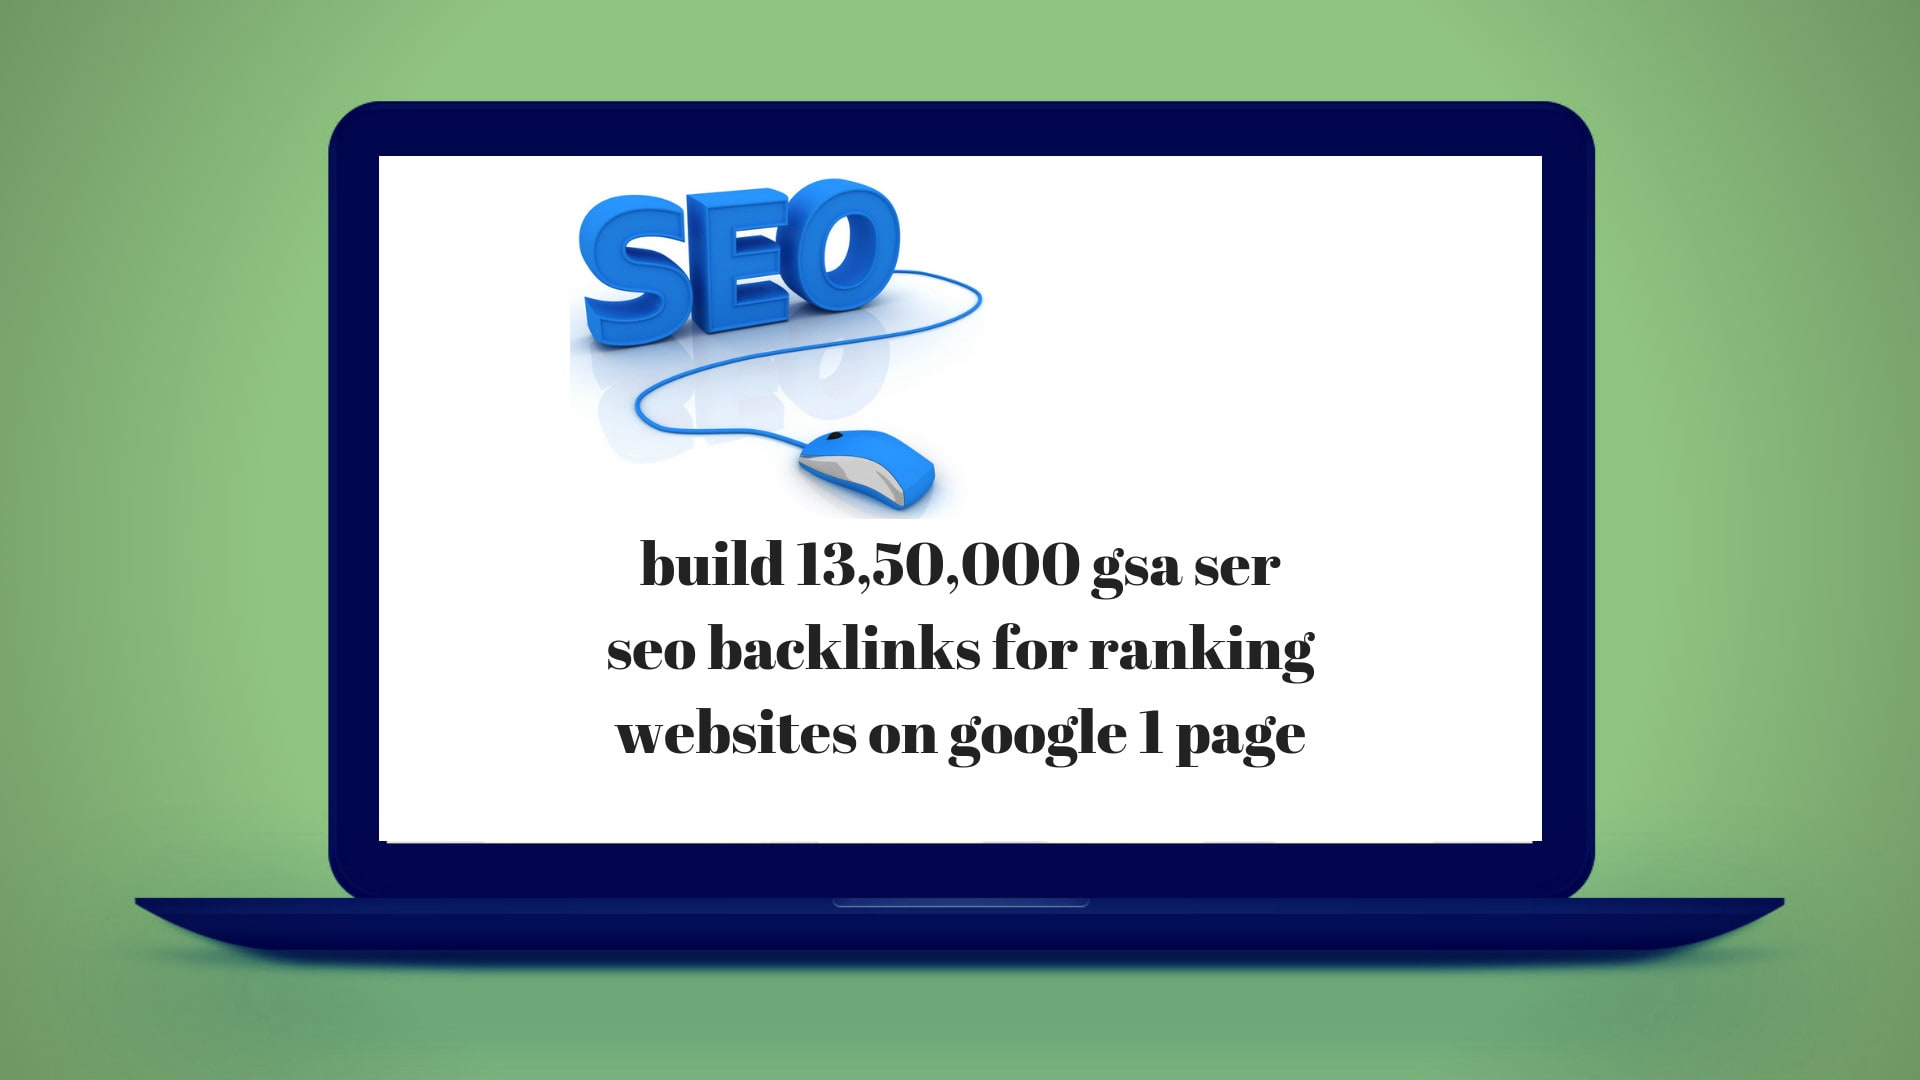 create 1,200,000 seo backlinks to your website